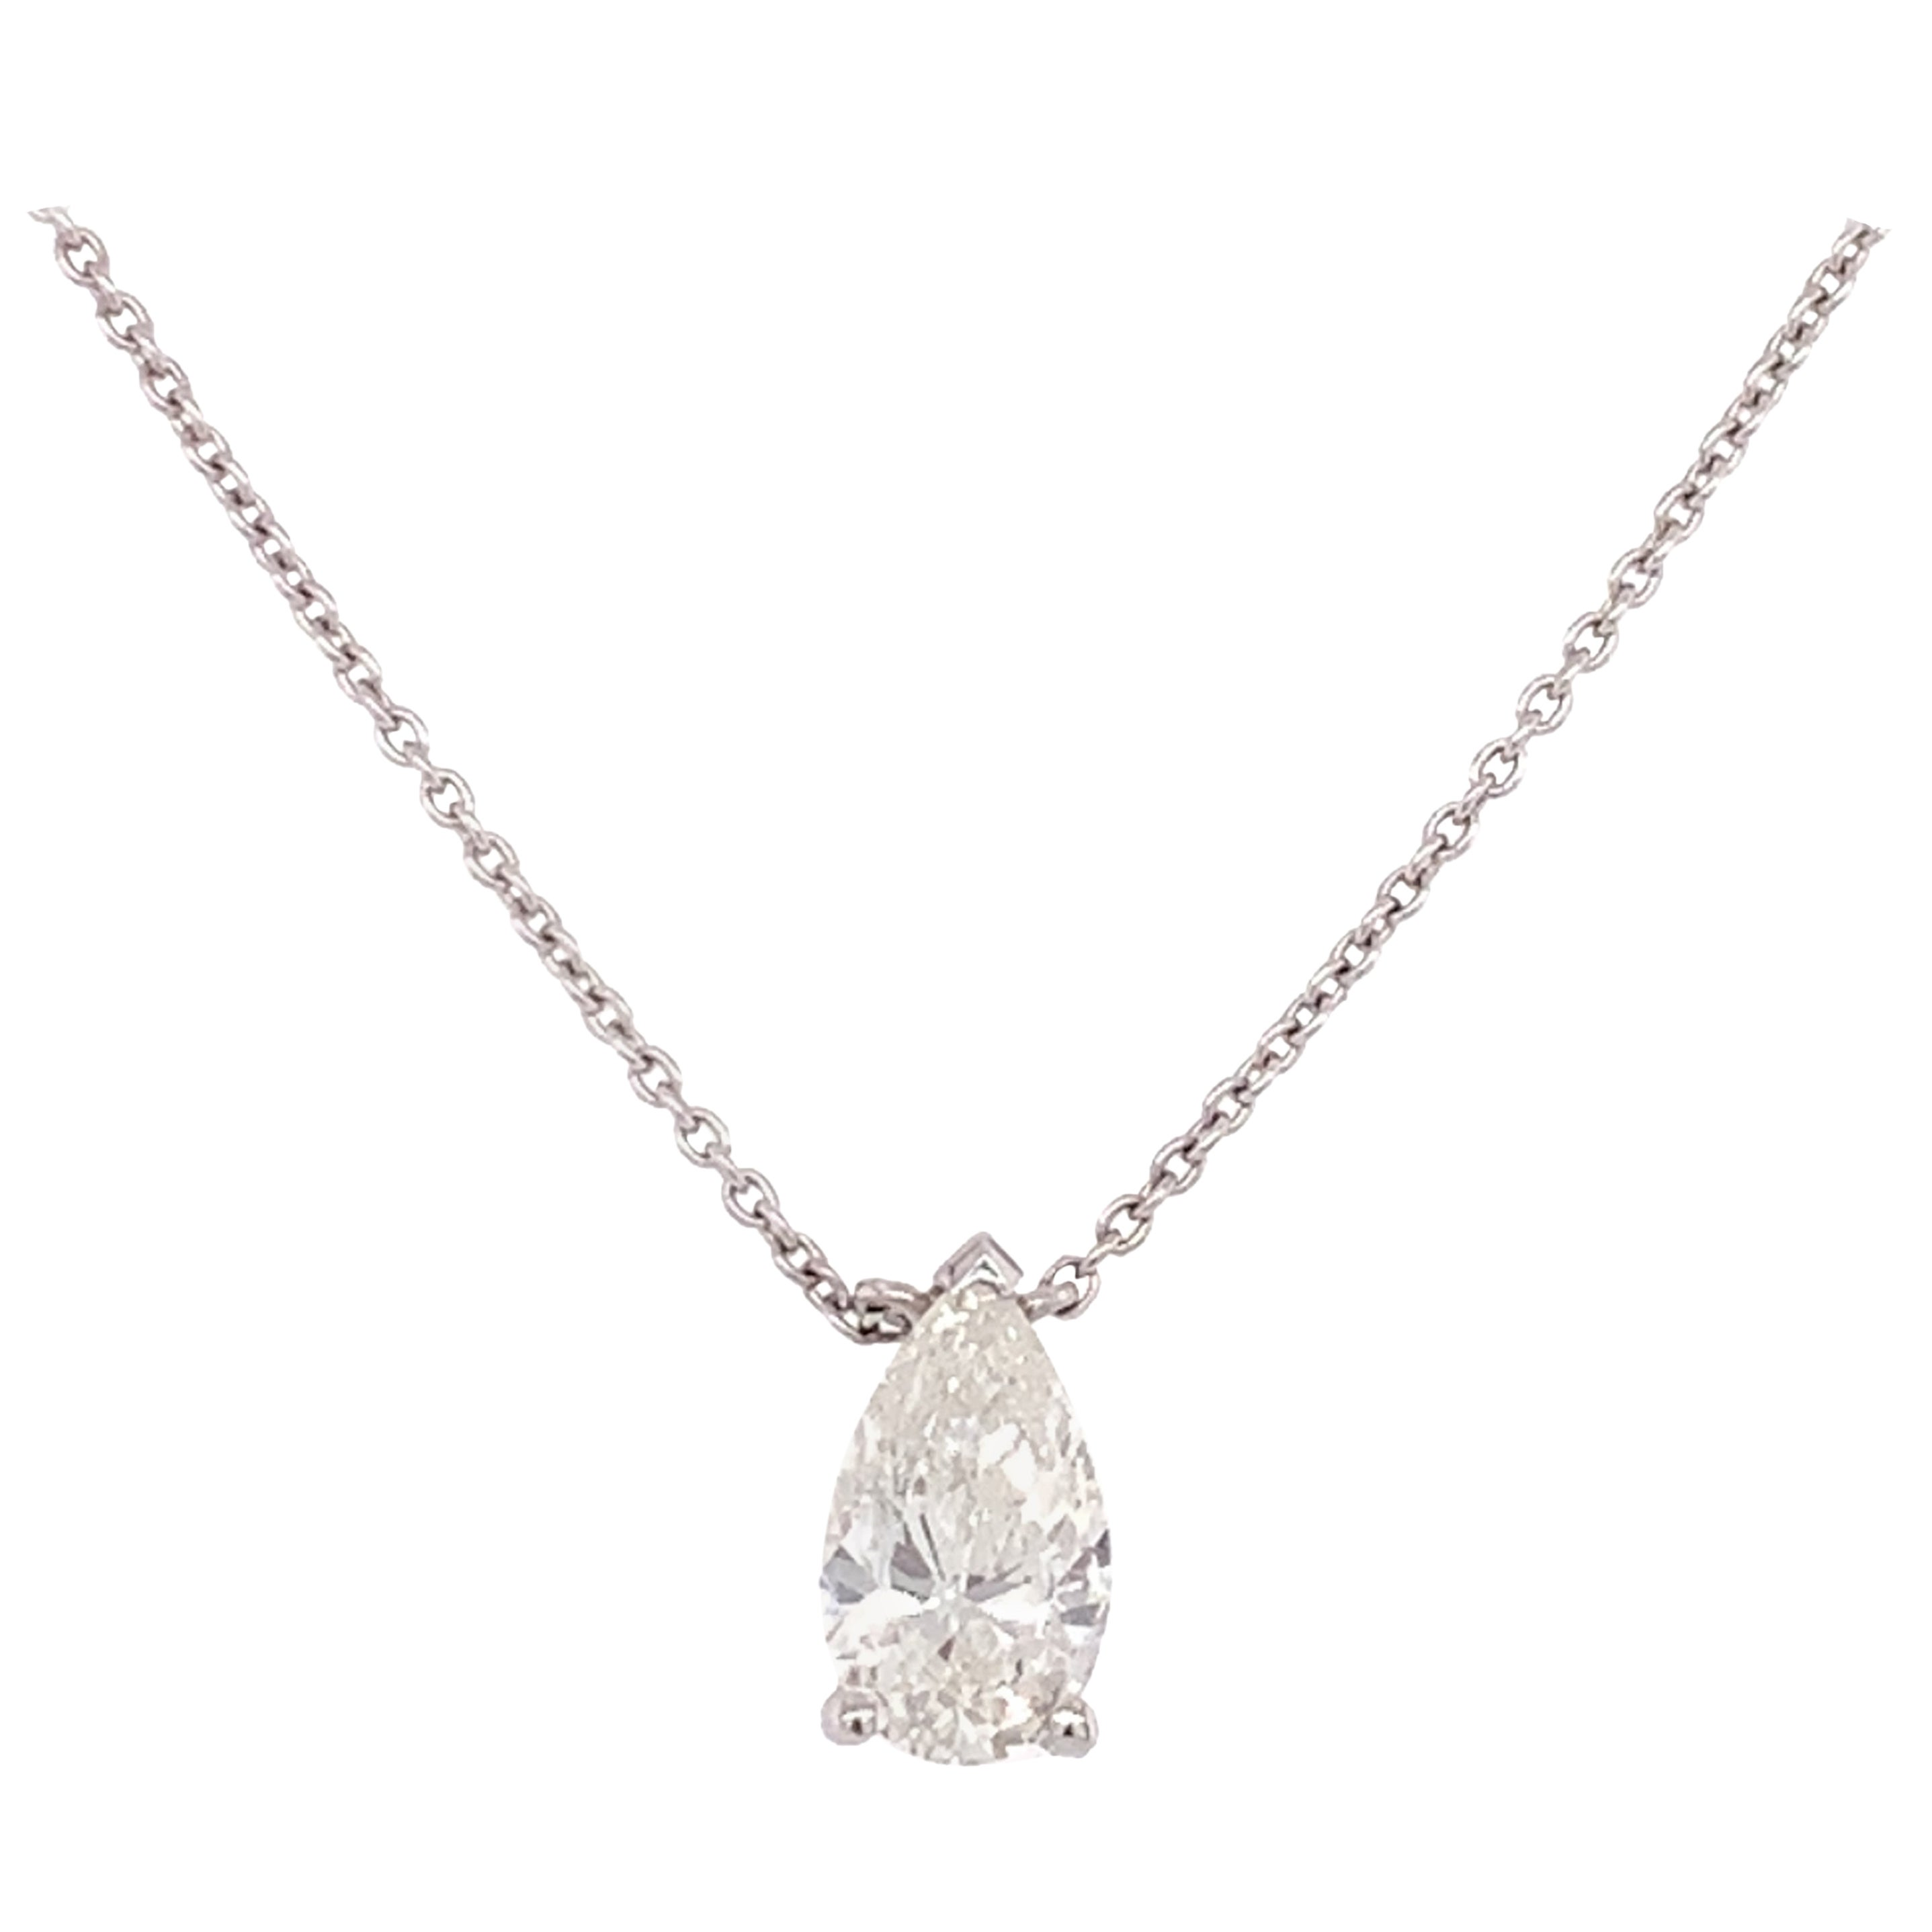 GIA Certified Pear Shaped Diamond Pendant Necklace